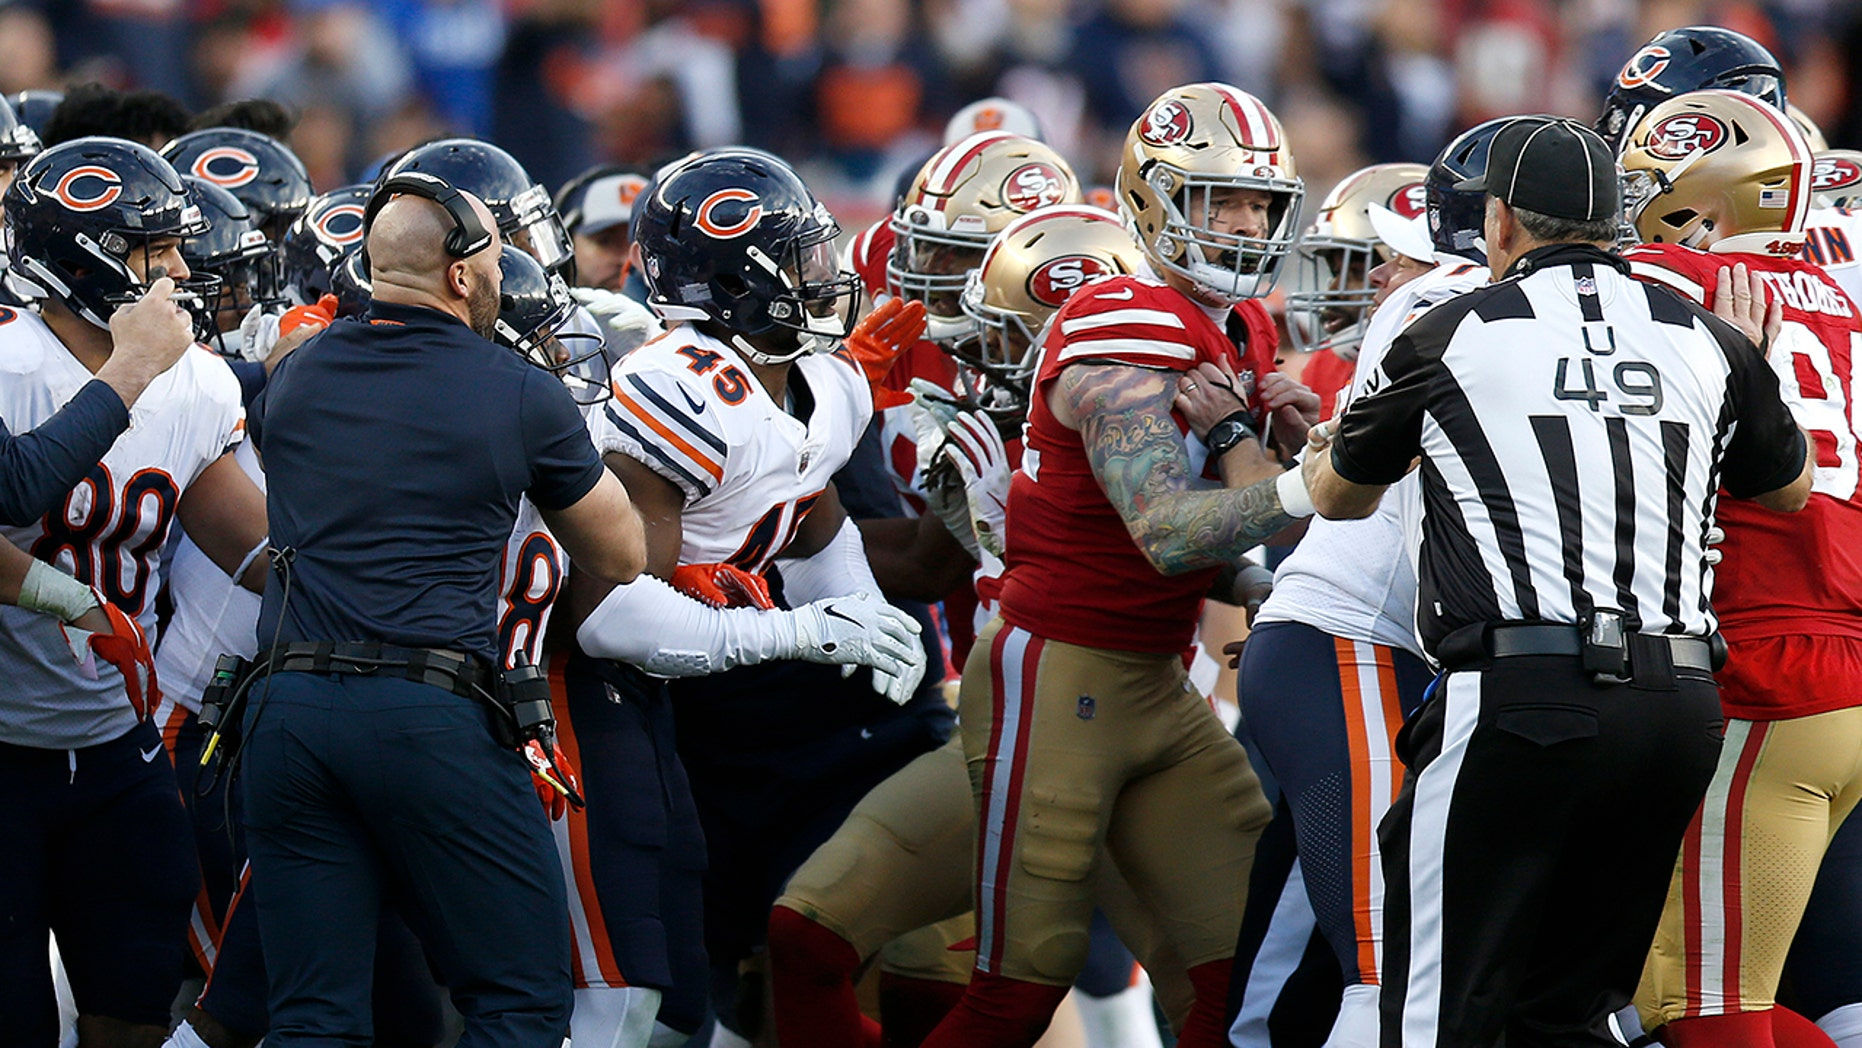 Coaches and officials try to separate Chicago Bears and San Francisco 49ers players during the second half of an NFL football game in Santa Clara, Calif., Sunday, Dec. 23, 2018.